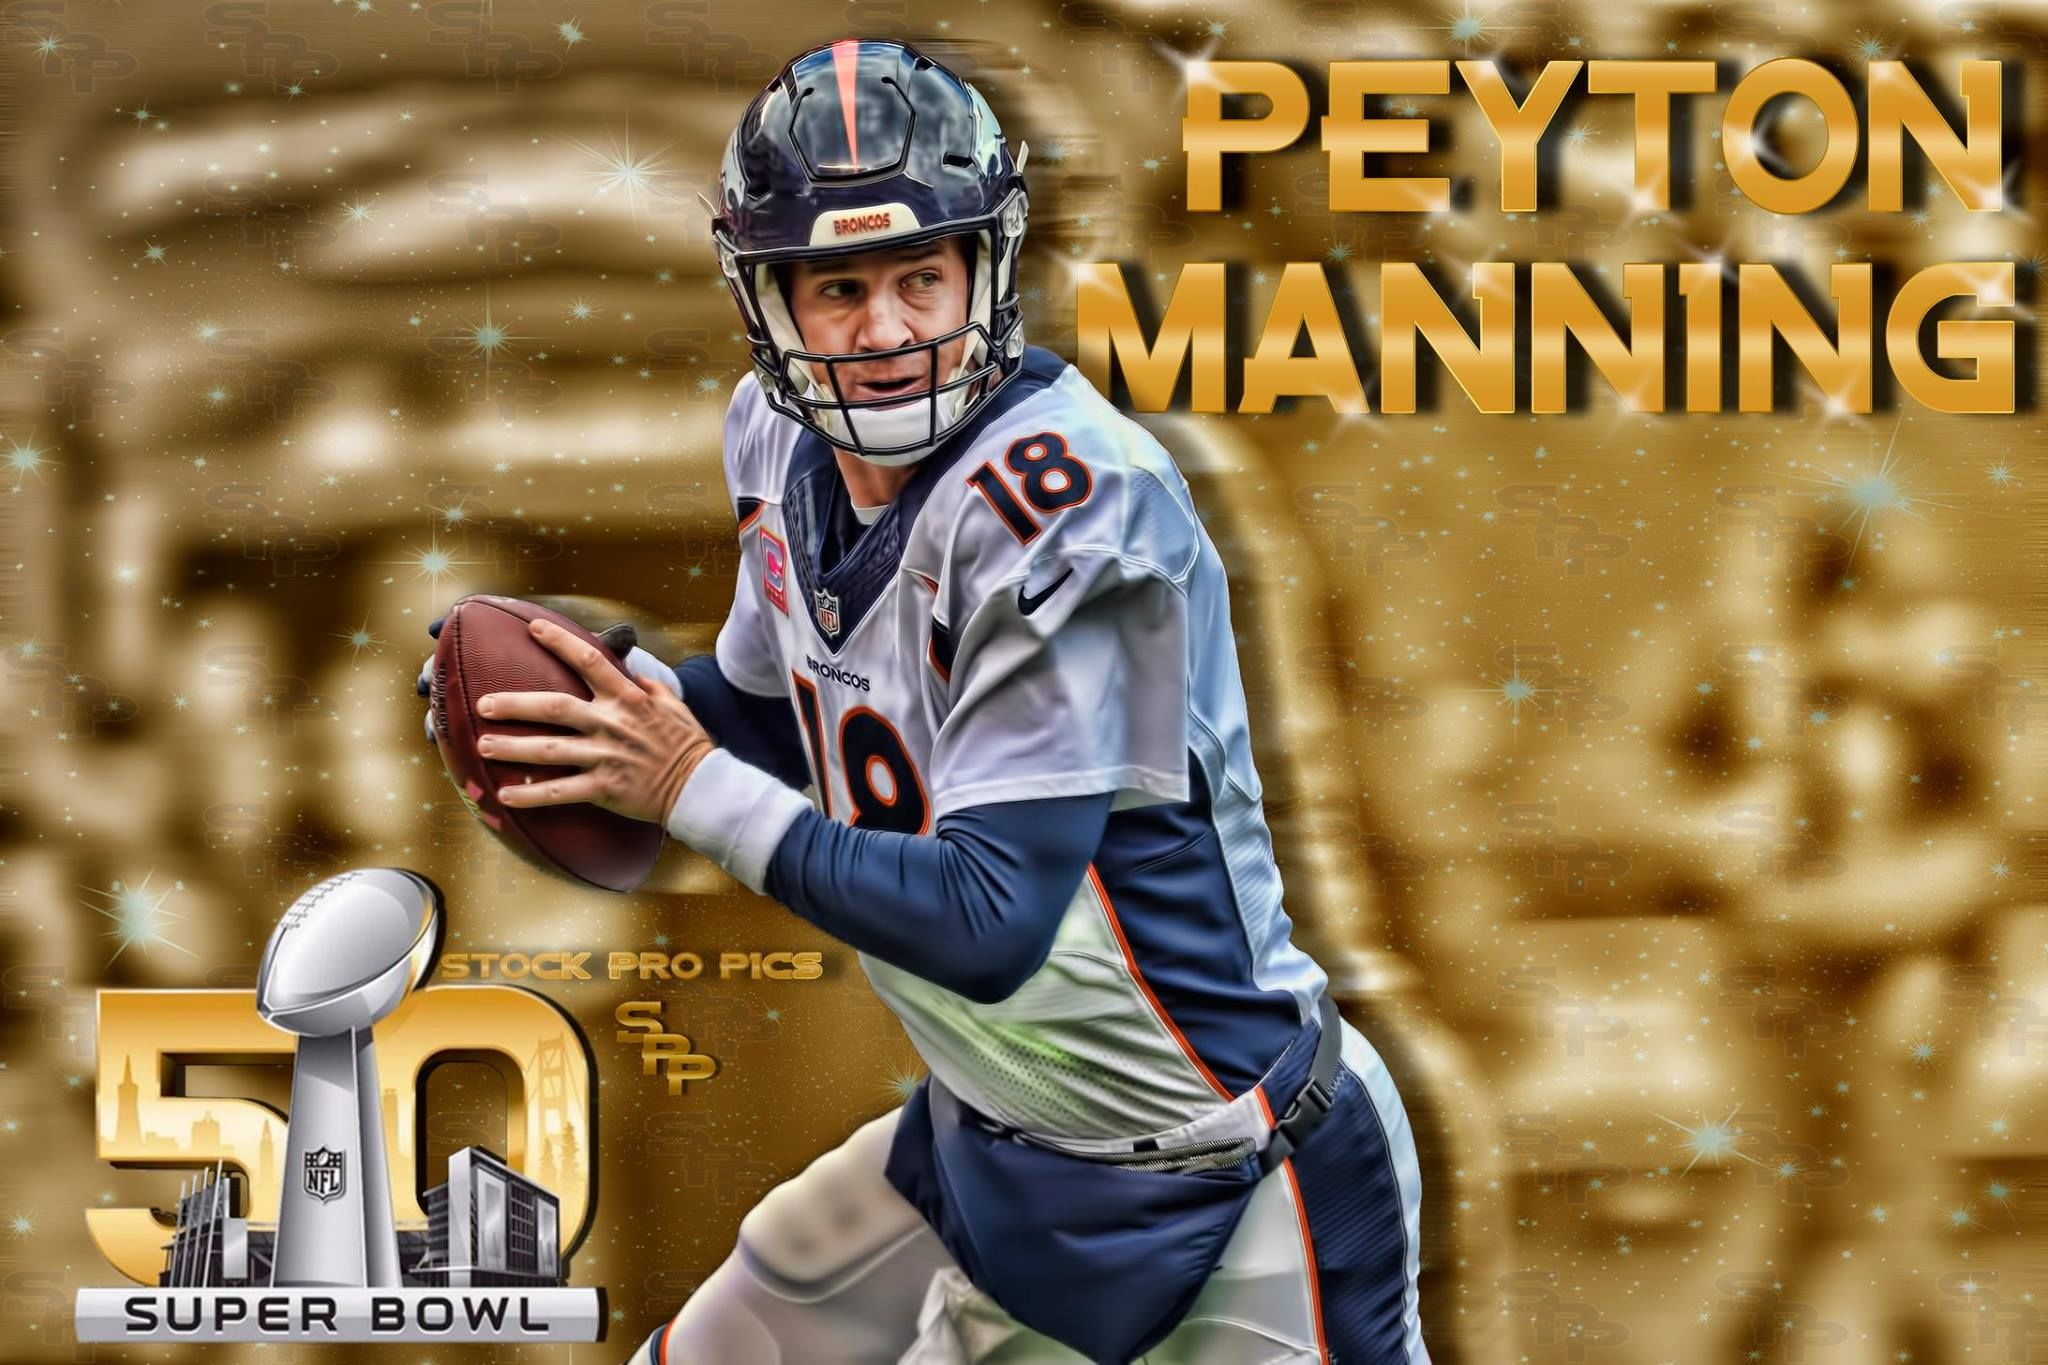 Cute St Patricks Wallpaper Peyton Manning Superbowl 50 Pictures Photos And Images